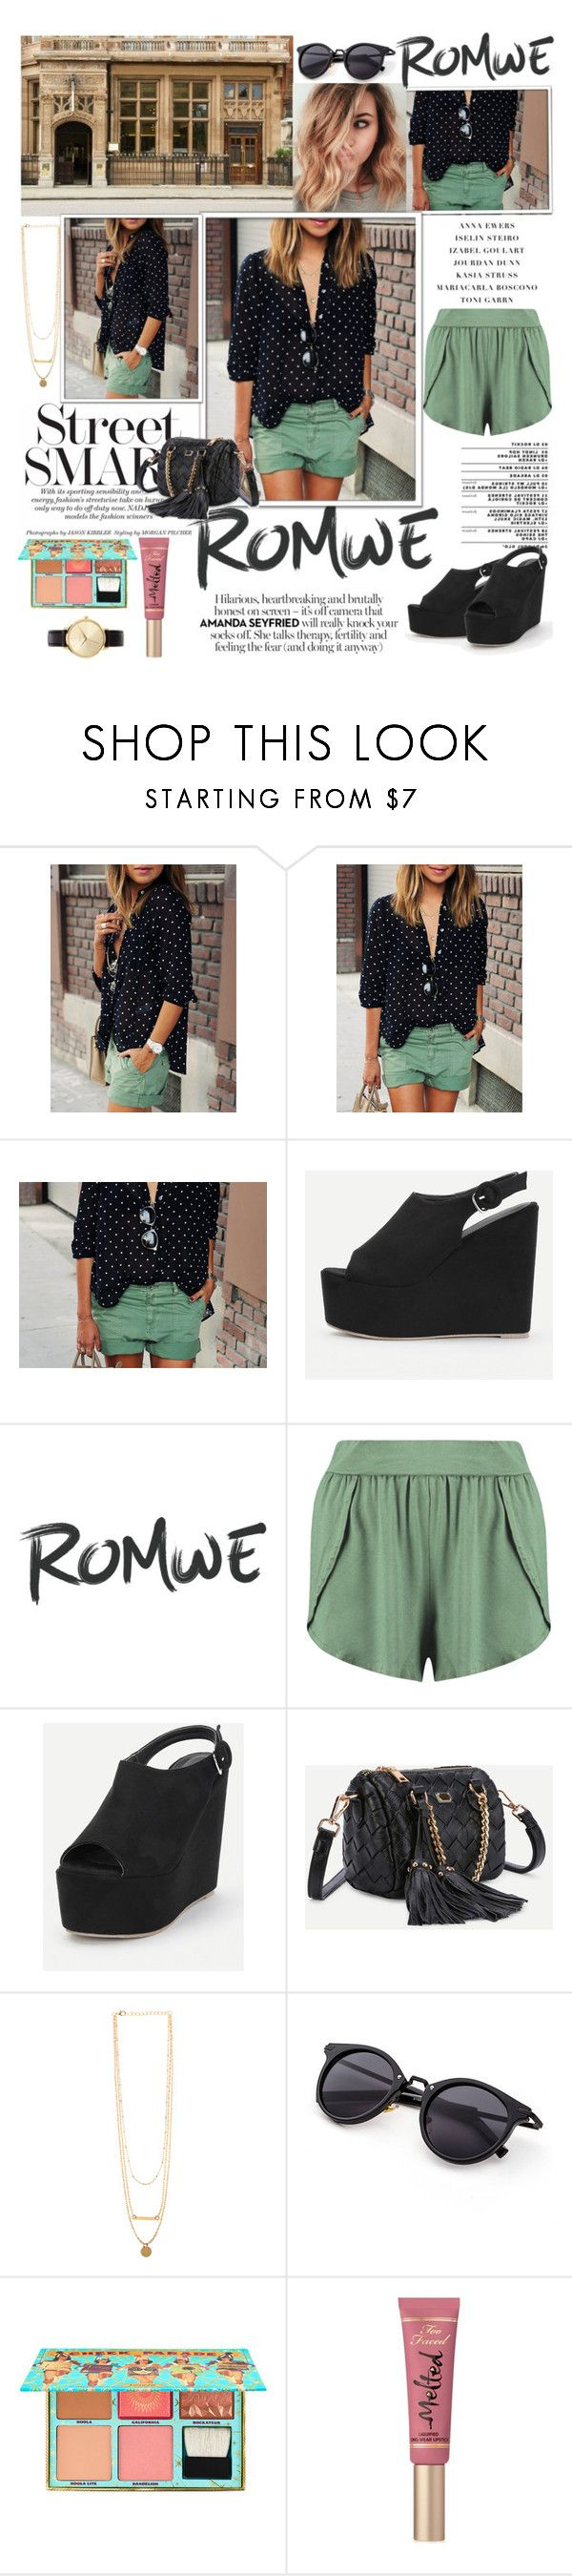 """Black Polka Dot With Buttons Blouse .- ROMWE.COM"" by miss-maca ❤ liked on Polyvore featuring Boohoo, Benefit, Too Faced Cosmetics and Nixon"